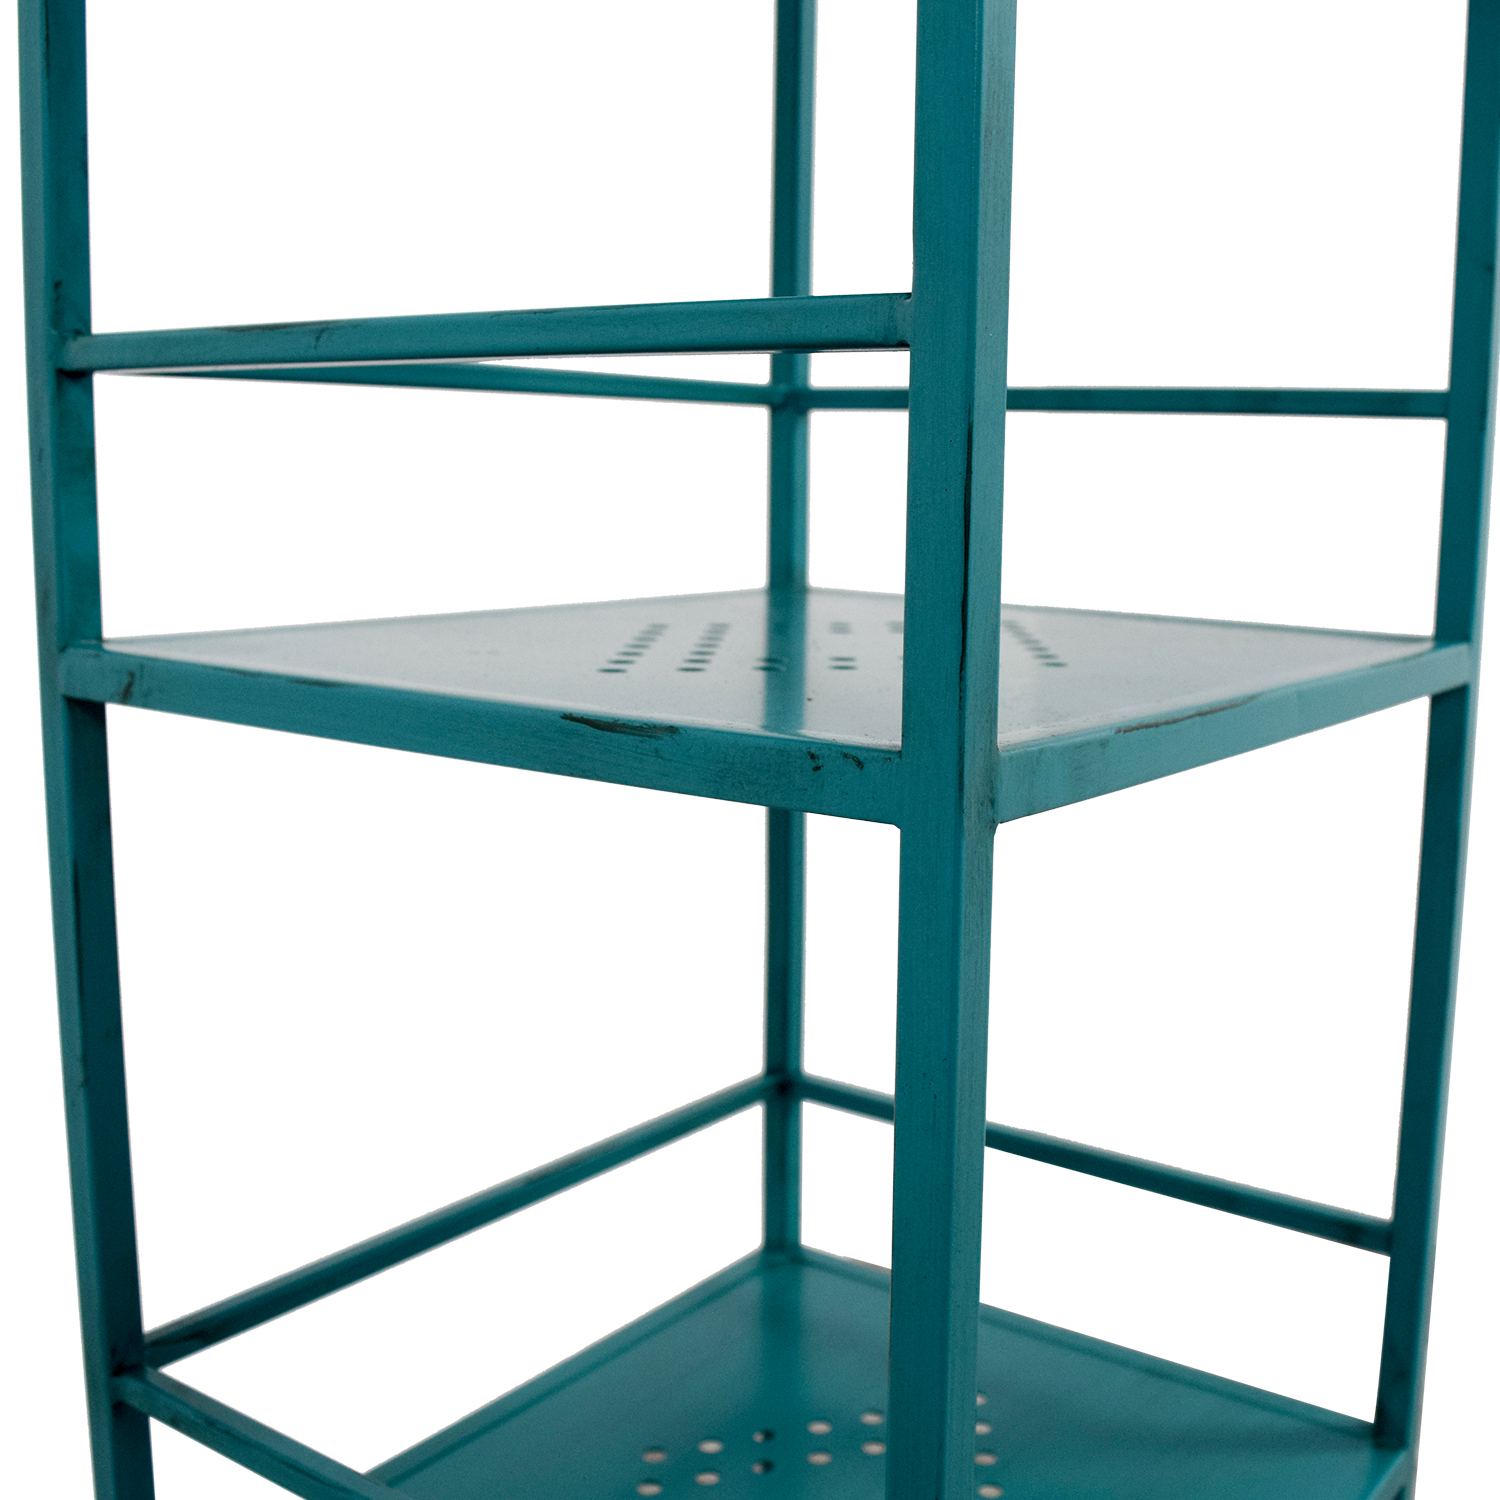 Pier 1 Imports Pier 1 Imports Weldon Turquoise Metal High Shelf discount